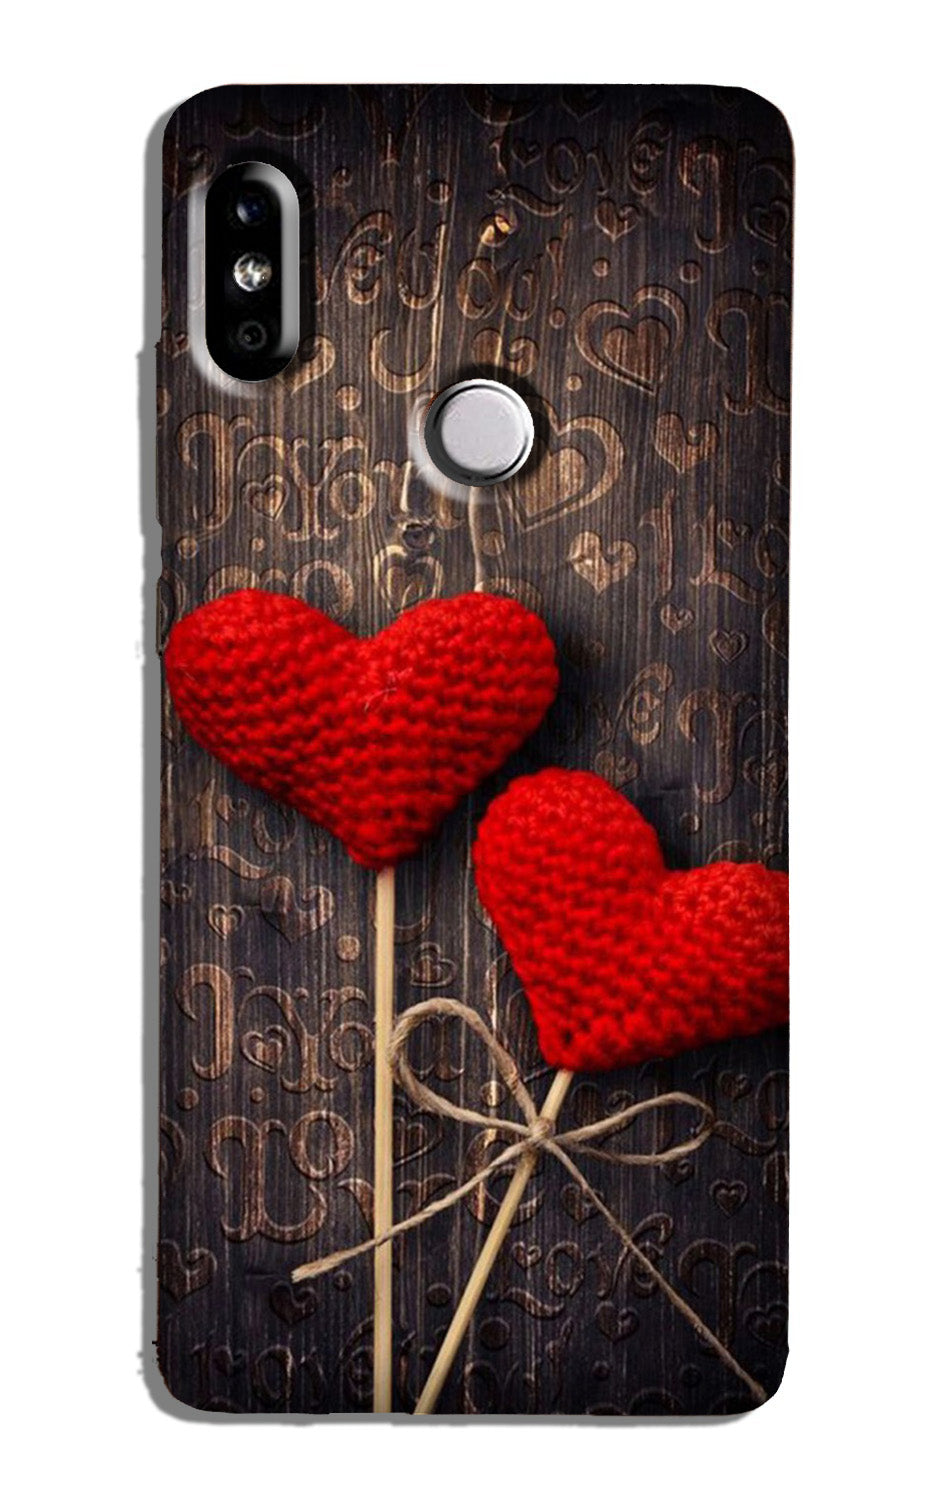 Red Hearts Case for Redmi 6 Pro